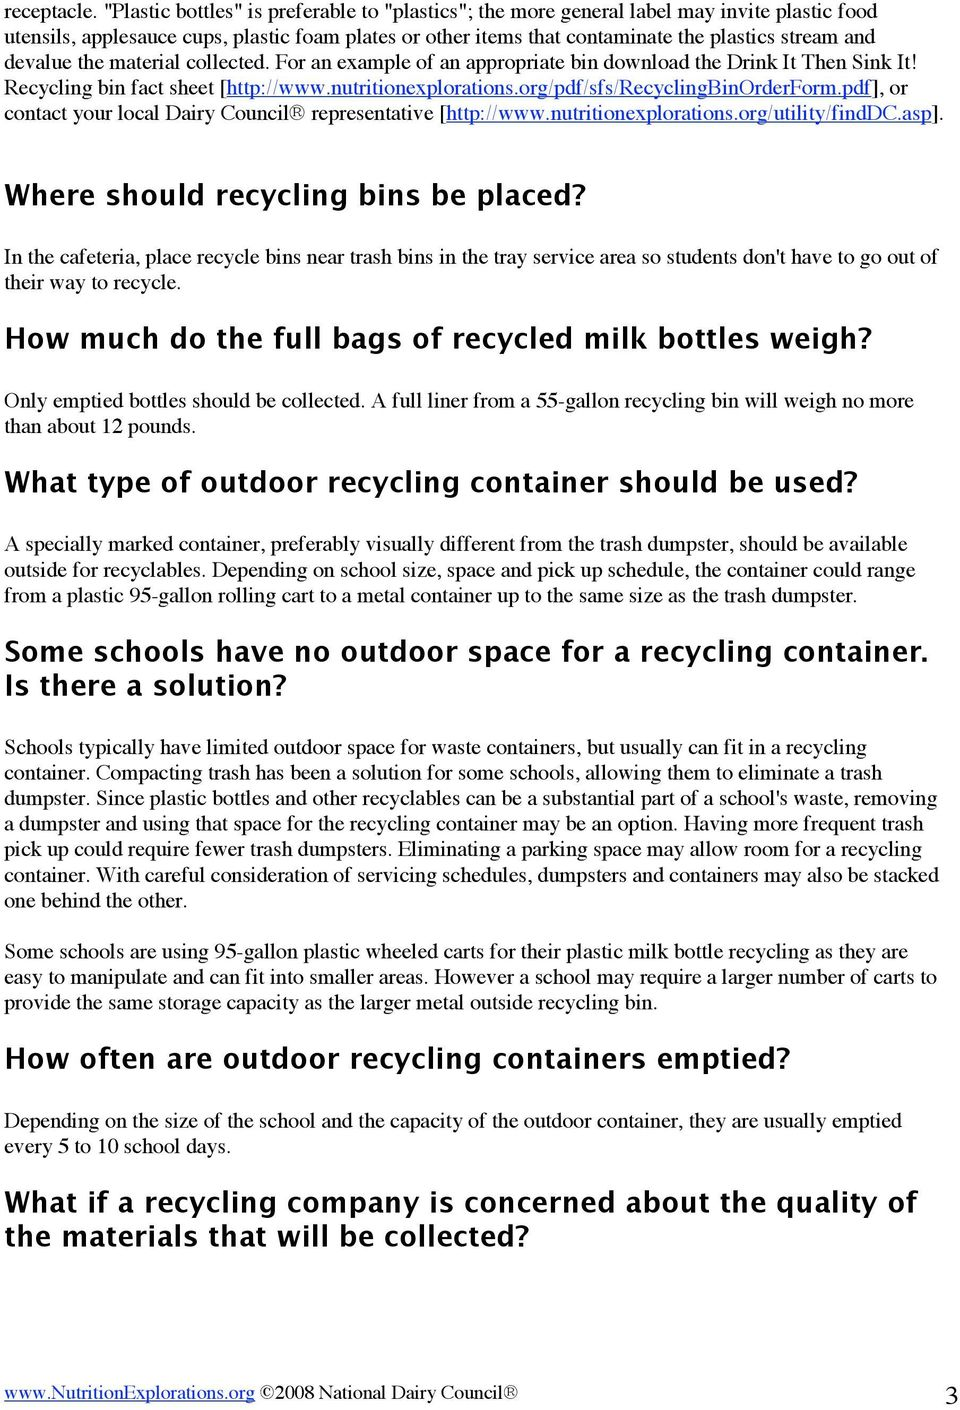 devalue the material collected. For an example of an appropriate bin download the Drink It Then Sink It! Recycling bin fact sheet [http://www.nutritionexplorations.org/pdf/sfs/recyclingbinorderform.